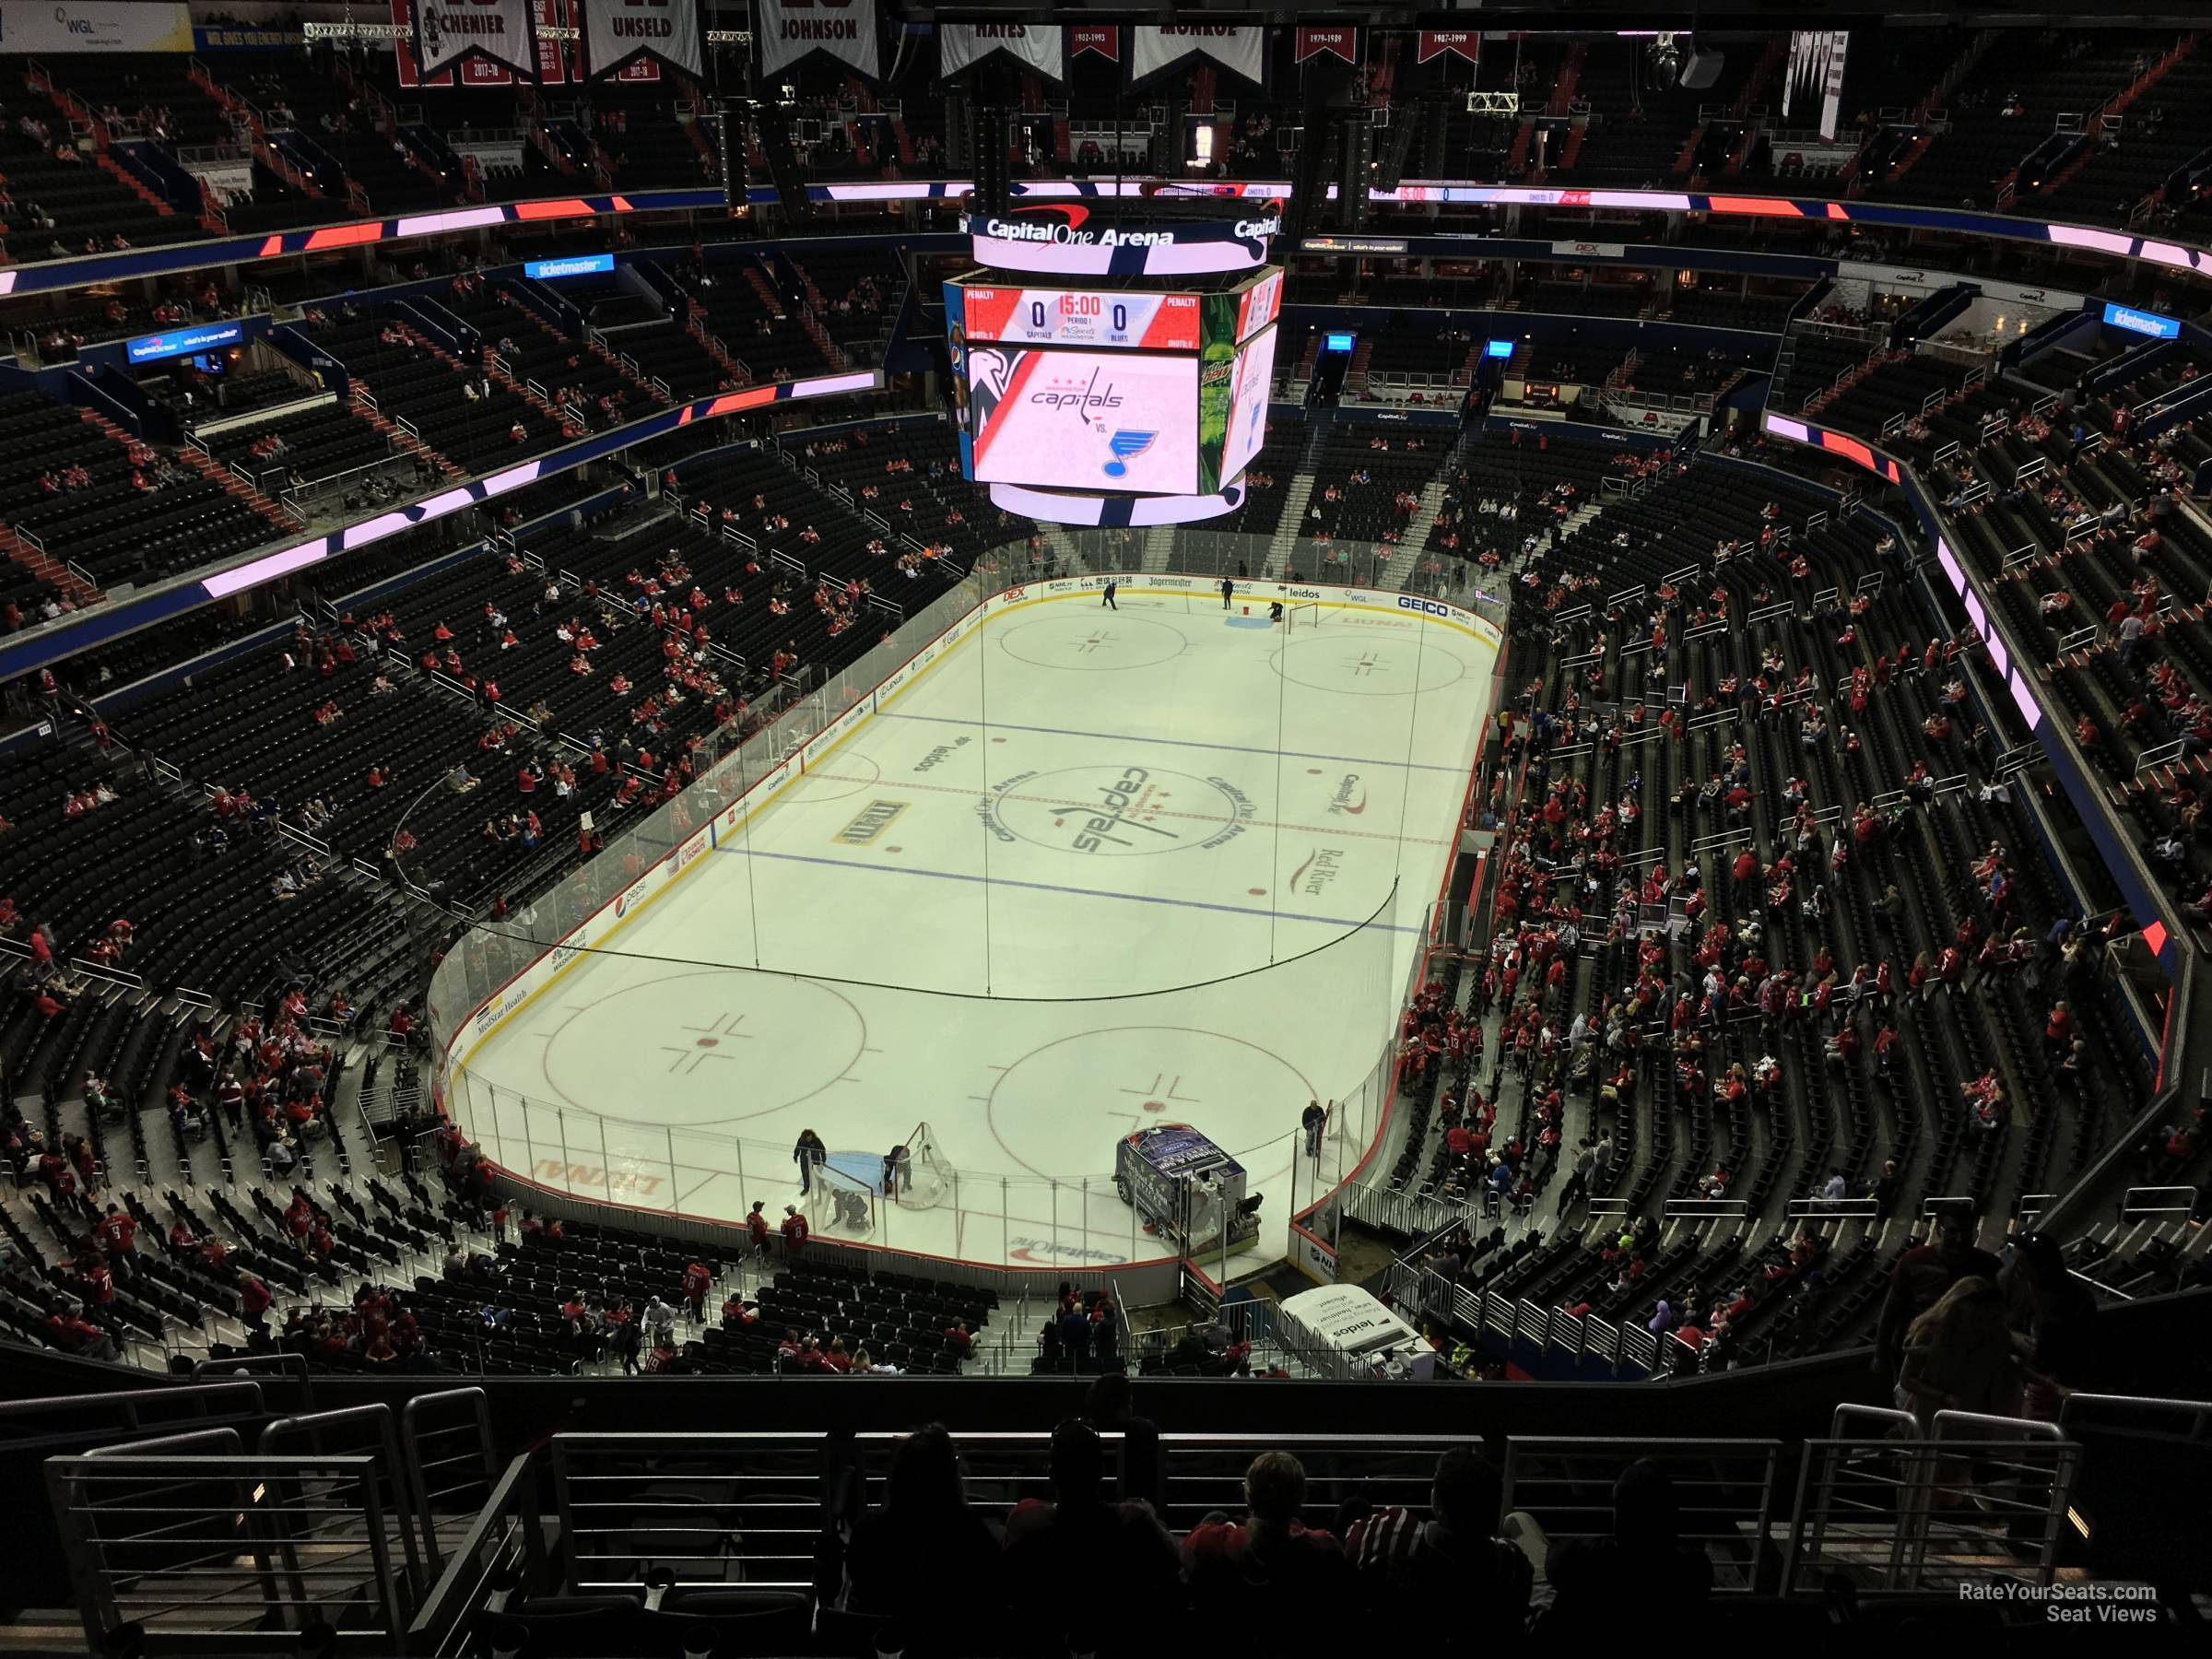 Section 427 seat view